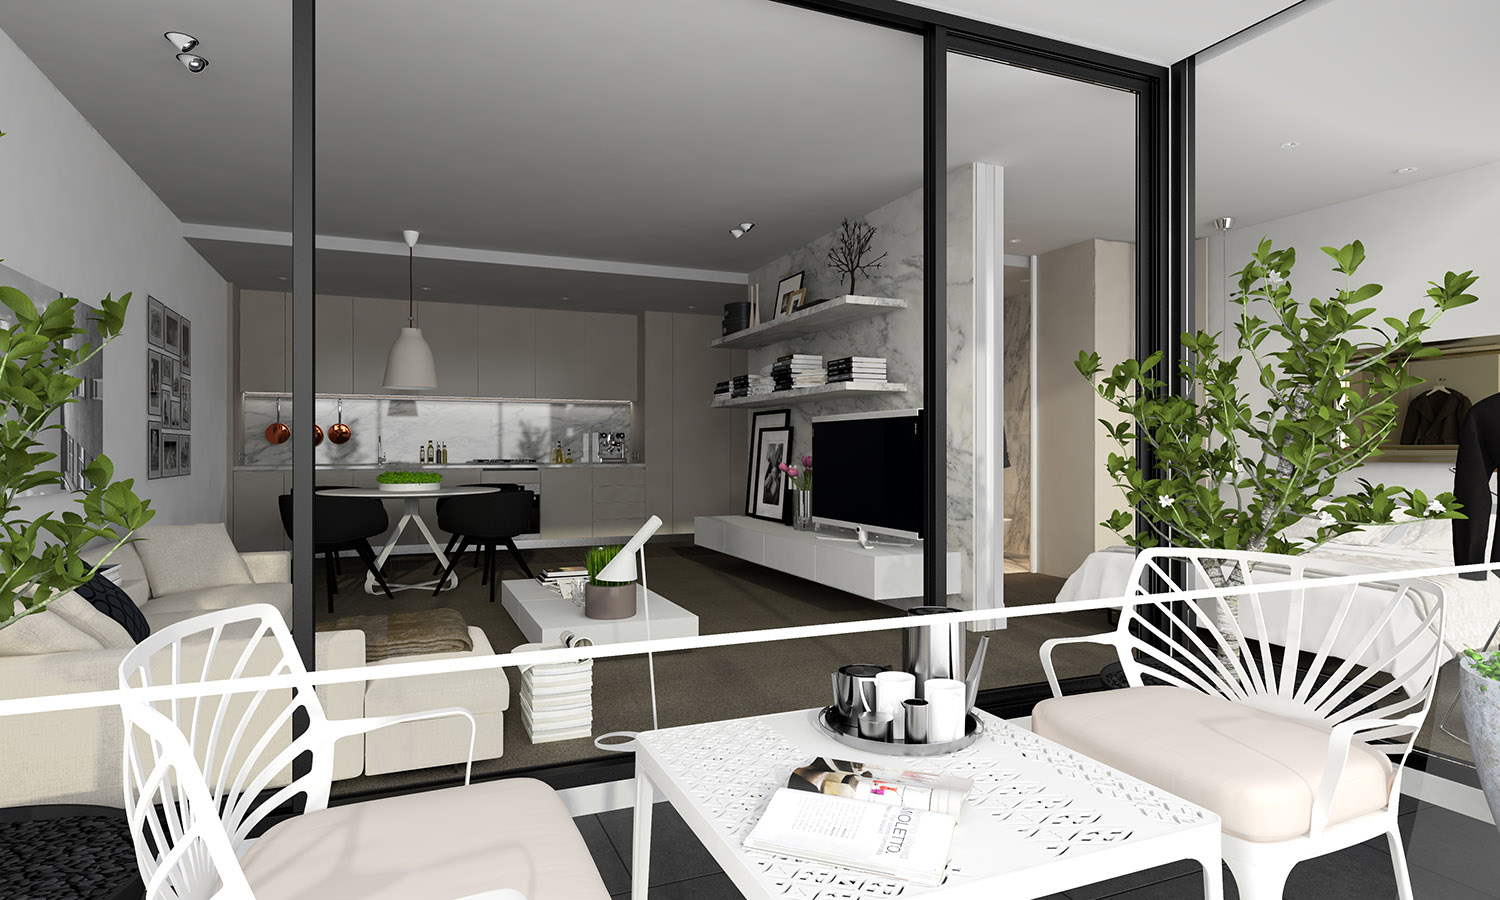 Studio apartment interiors inspiration for Studio apartment living ideas